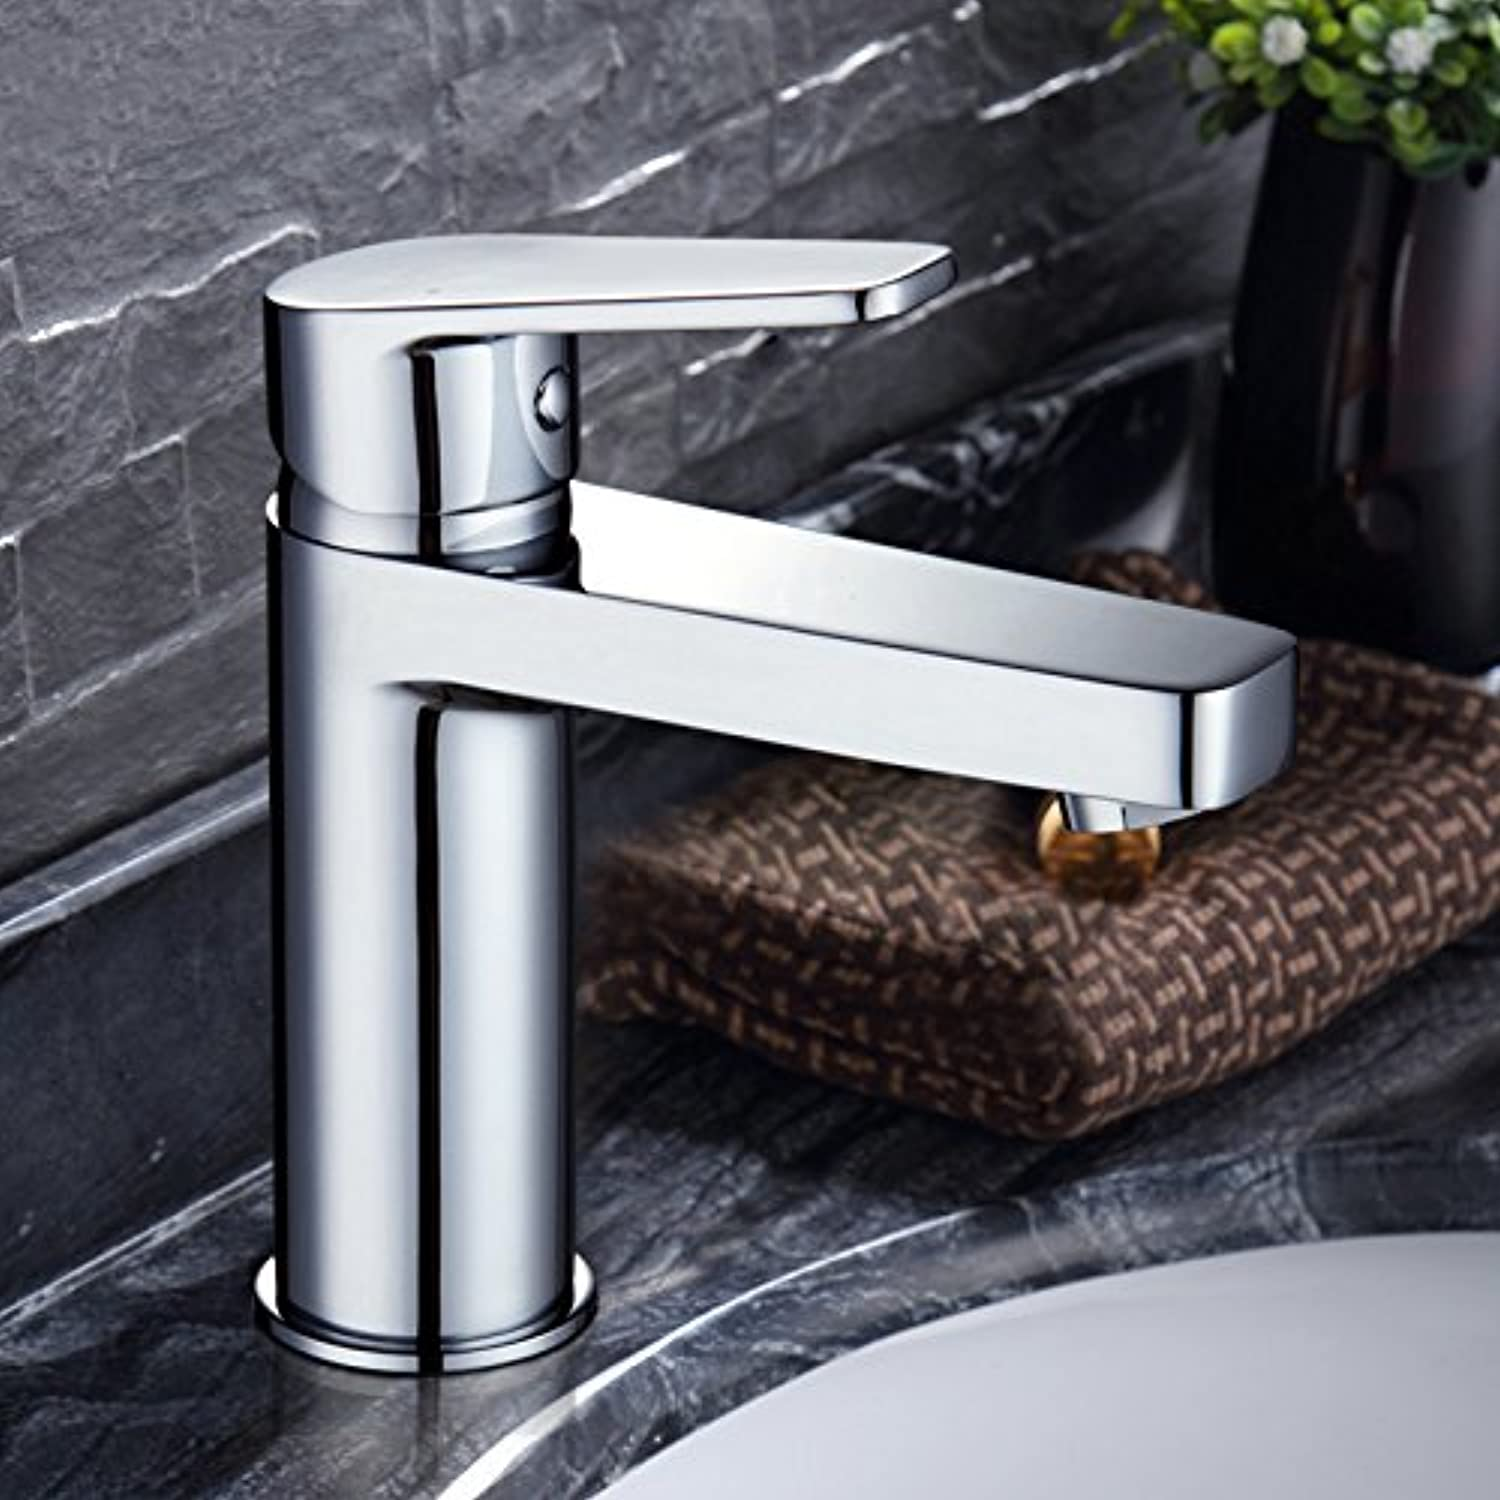 Von YIRUI basin Taps Brass basin faucet hot and cold wash basin wash faucet, send water soft 2 root